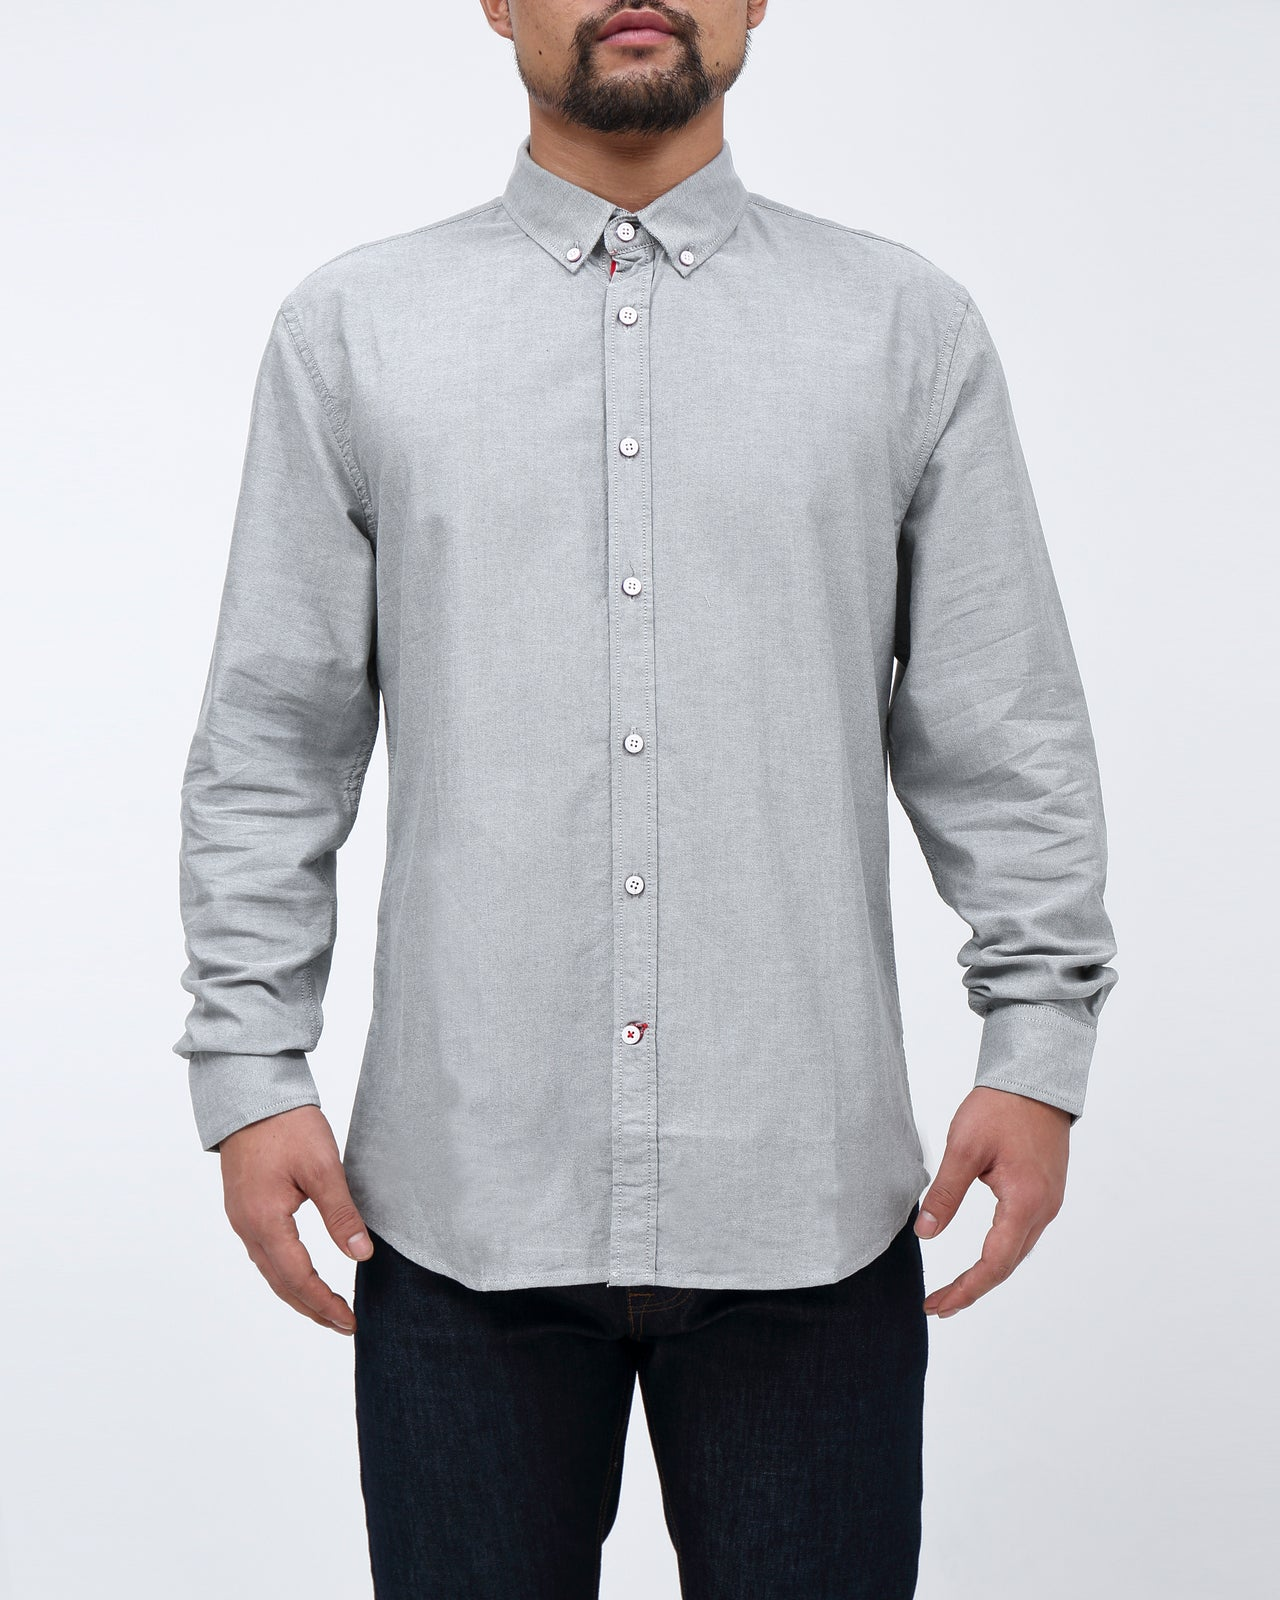 Solid Long Sleeve Shirt - Color: Gray | Gray